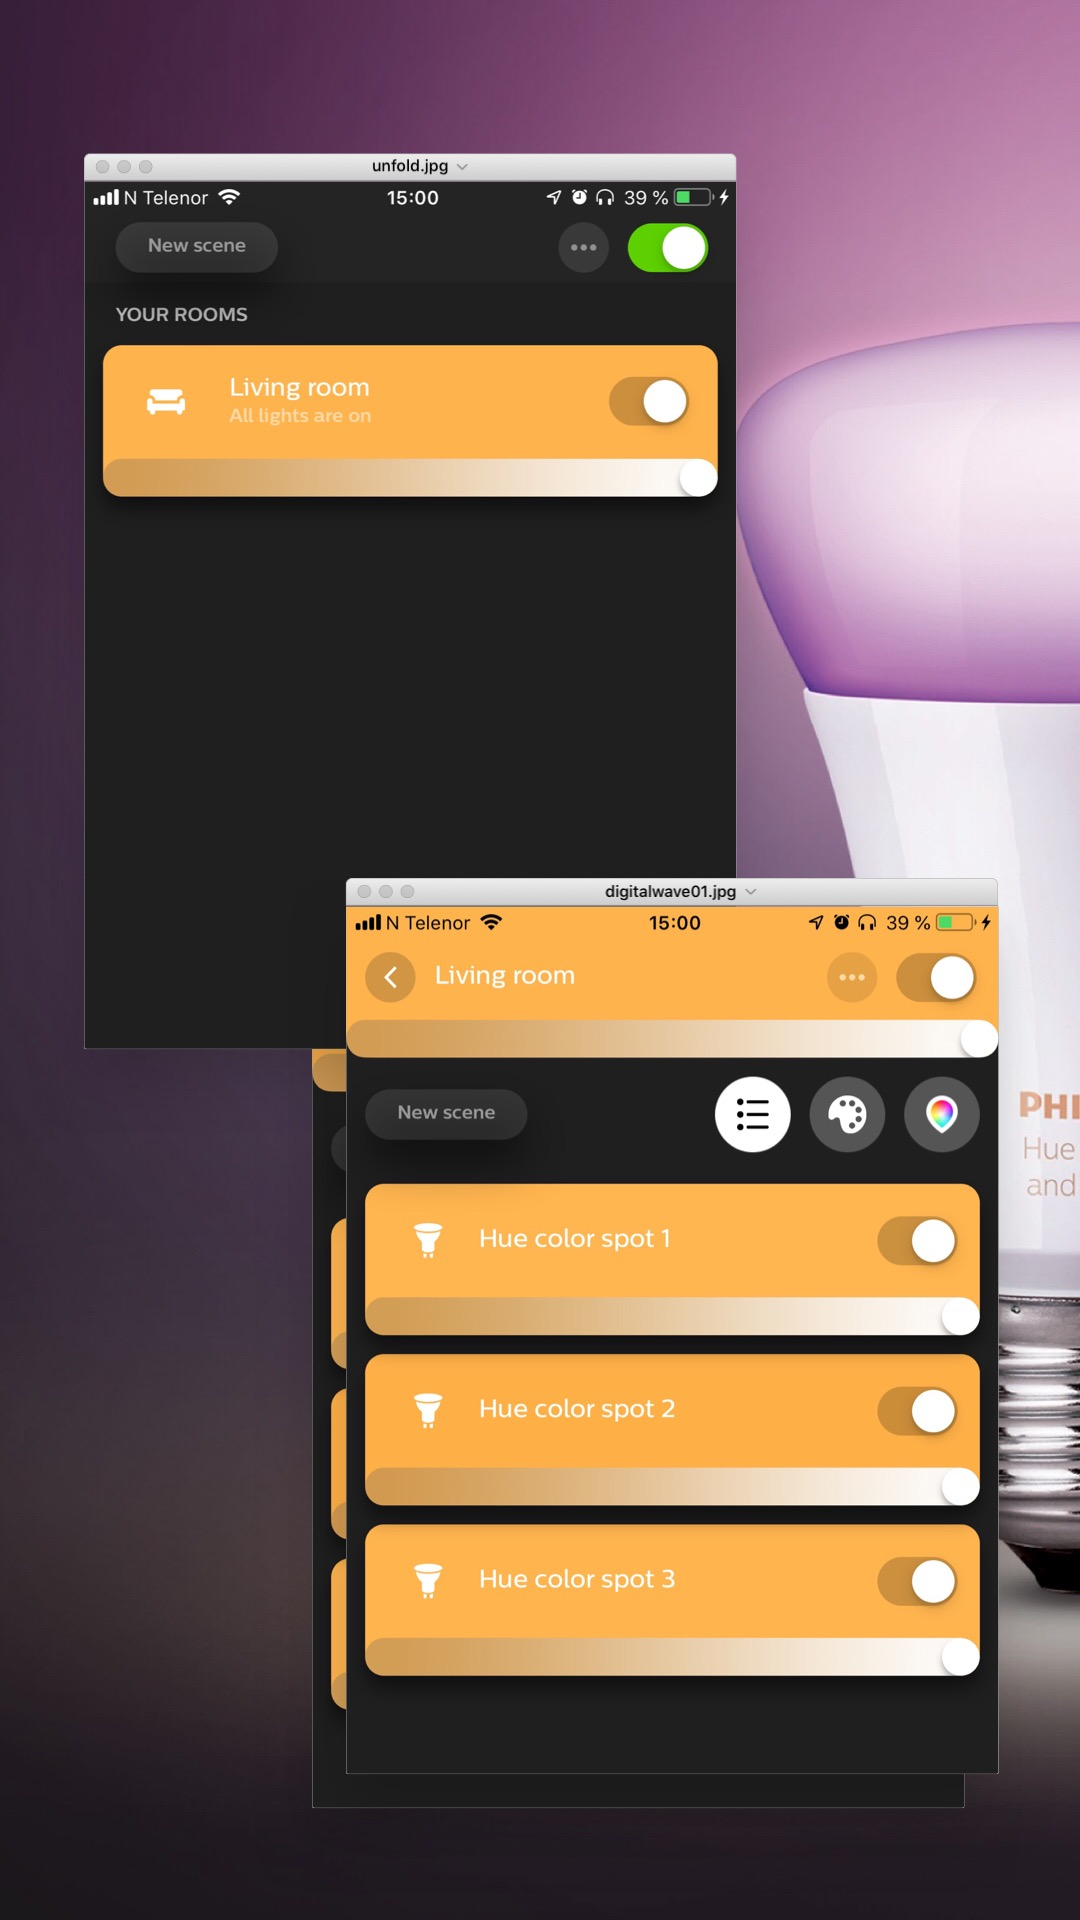 THE HUE APP - You can easily control the lightbulbs with the app, or, if you have an iPhone, through the shortcut on your control panel. You will be given the chance to change color, temprature and brightness.